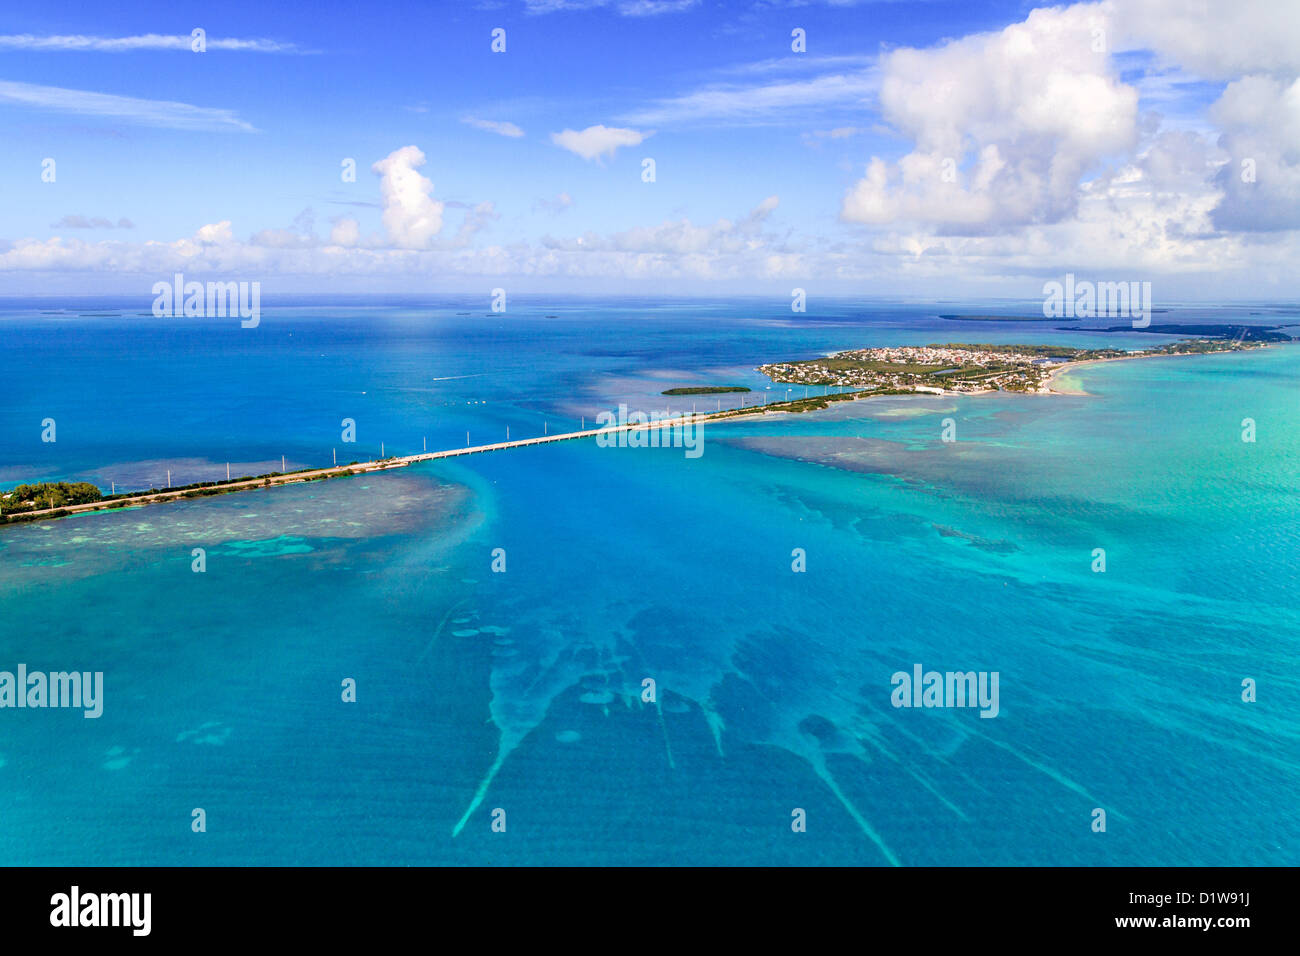 Florida Keys Aerial View from airplane - Stock Image